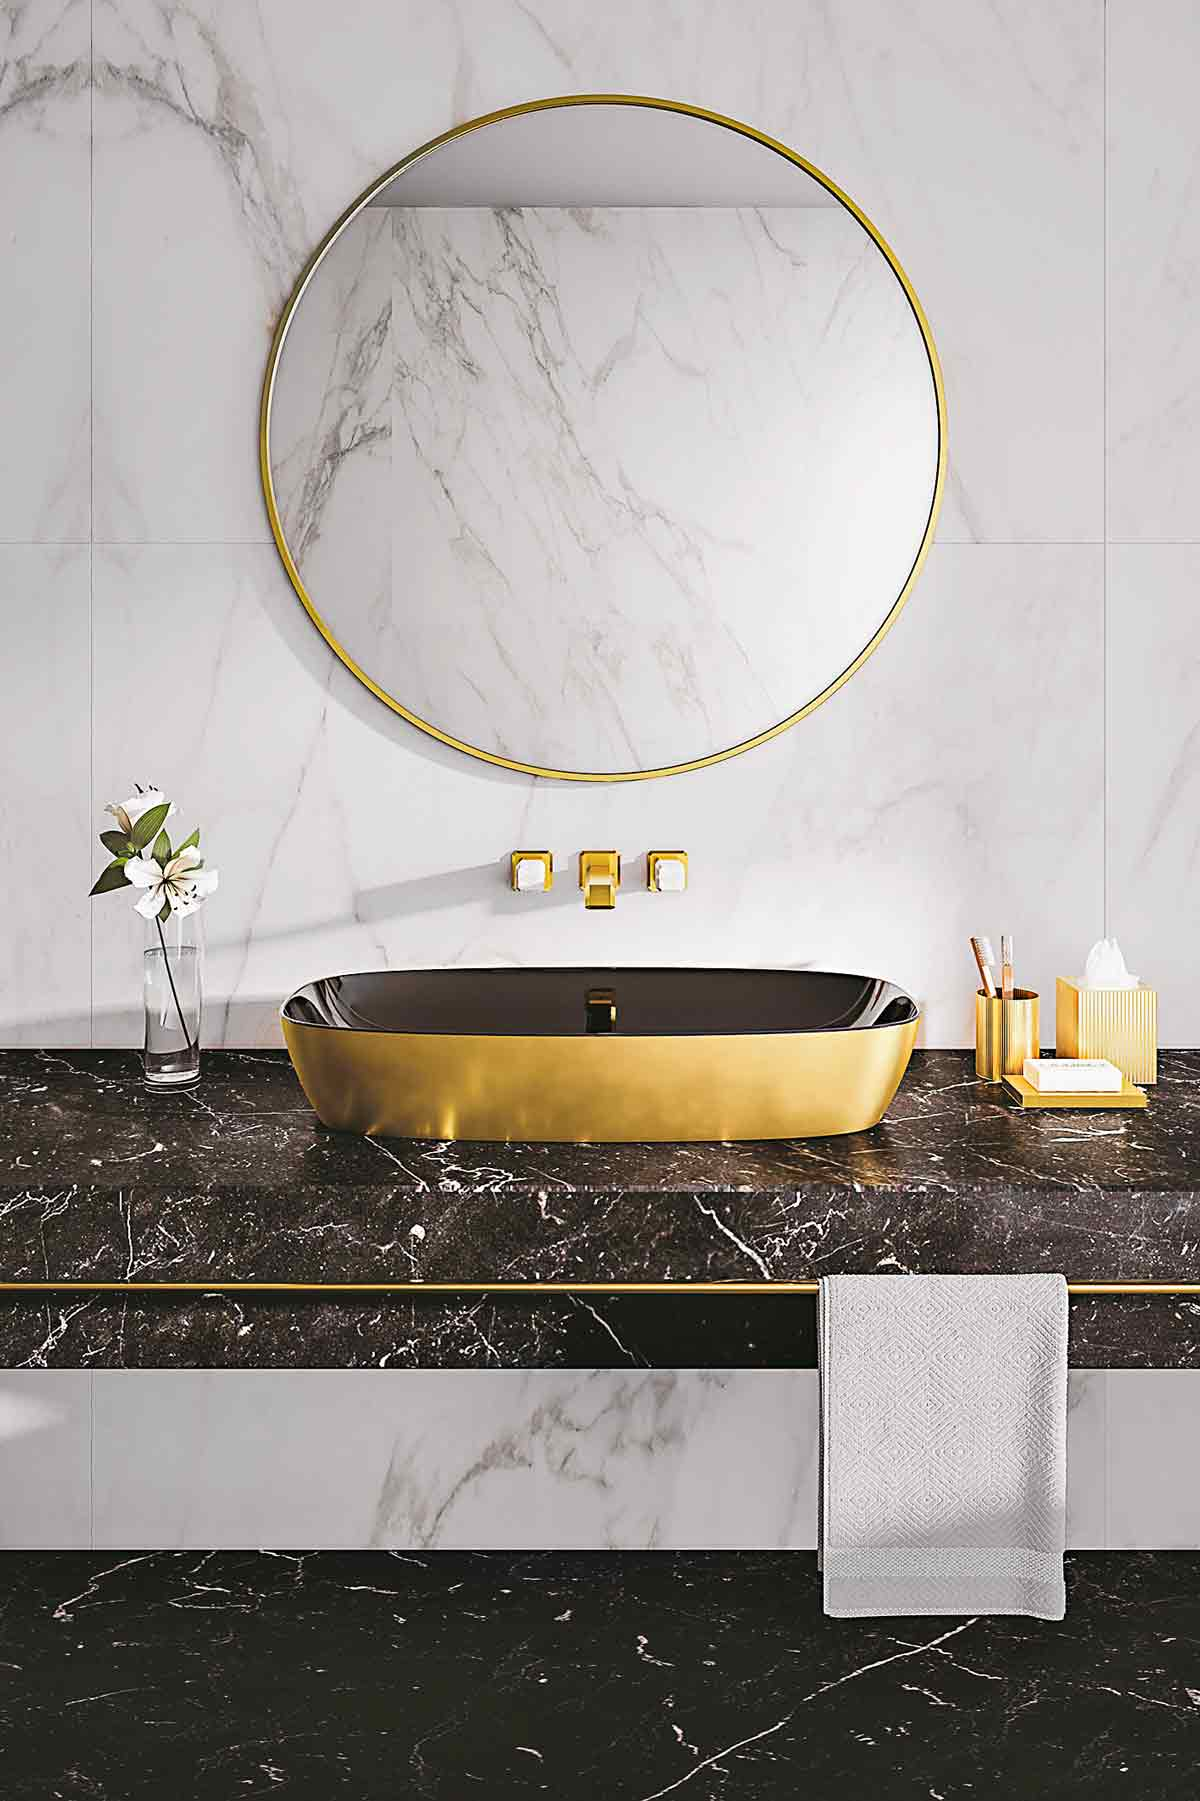 Green Lux 80 Basin In Gold And Black 1108 80 Catalano Co Uk